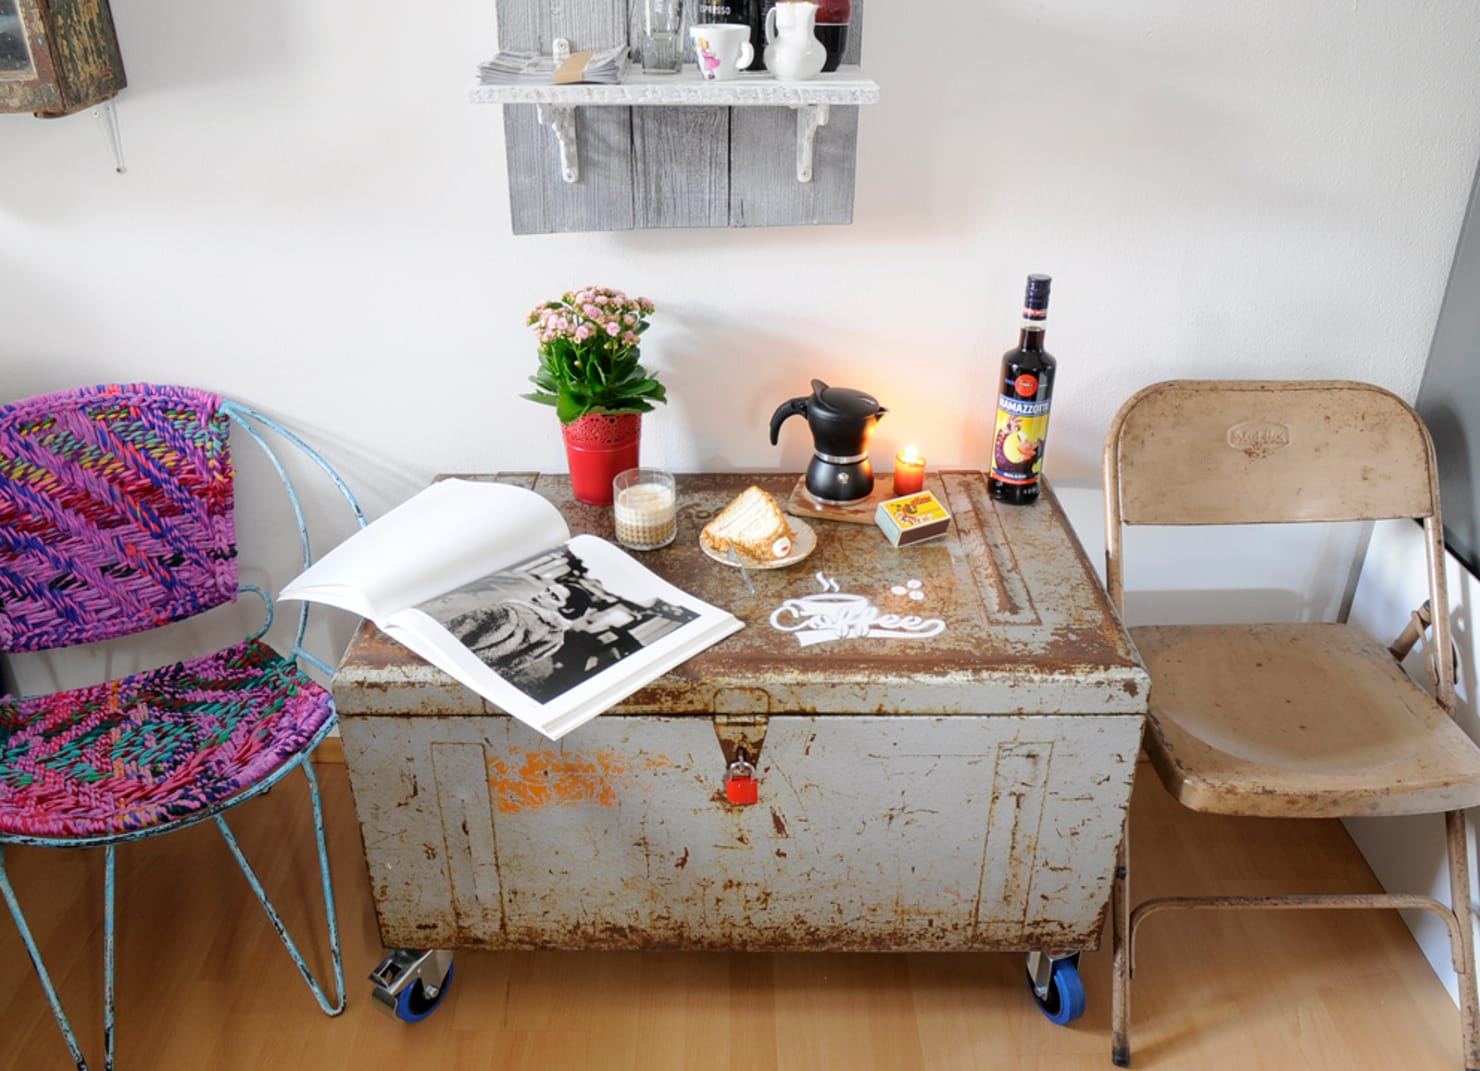 21 upcycling projects you'll want to try your hand at